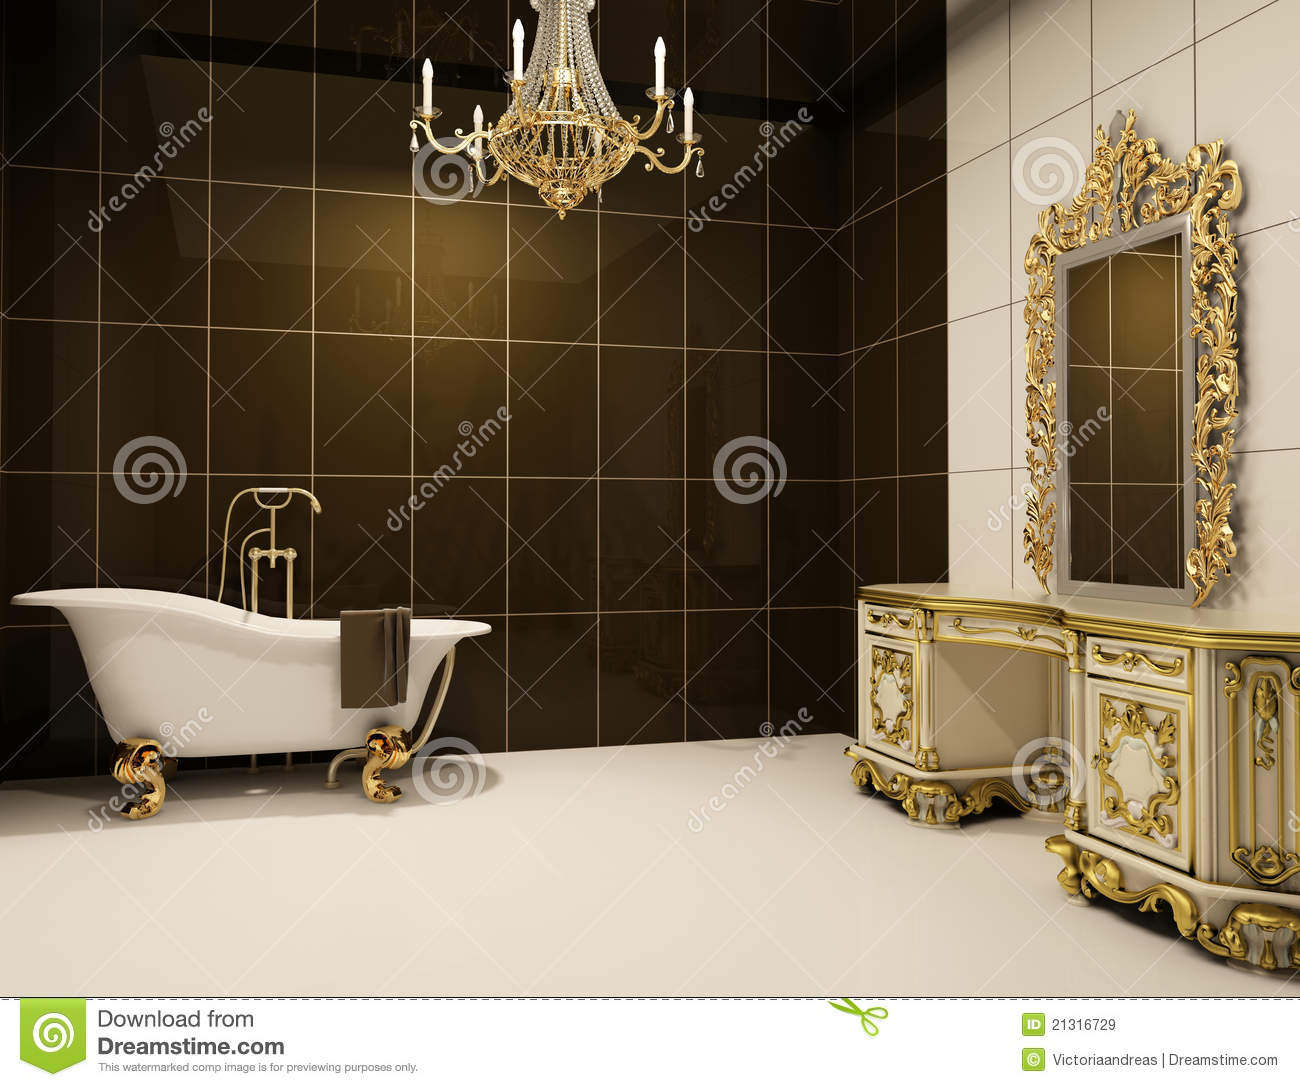 baroque furniture in bathroom royalty free stock images - image, Hause ideen